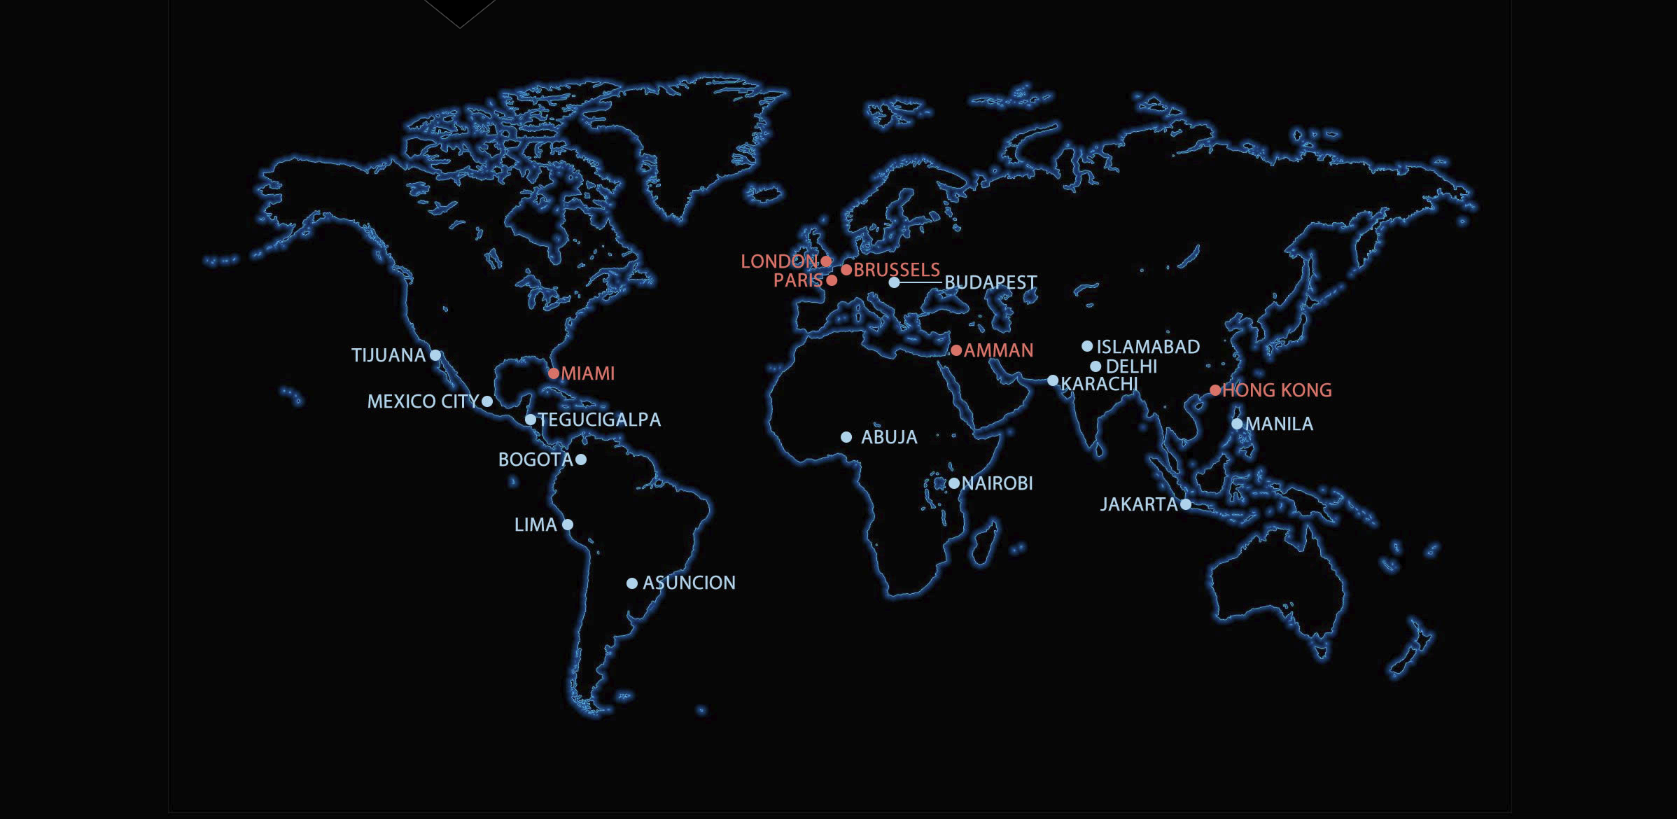 Interactive world map image